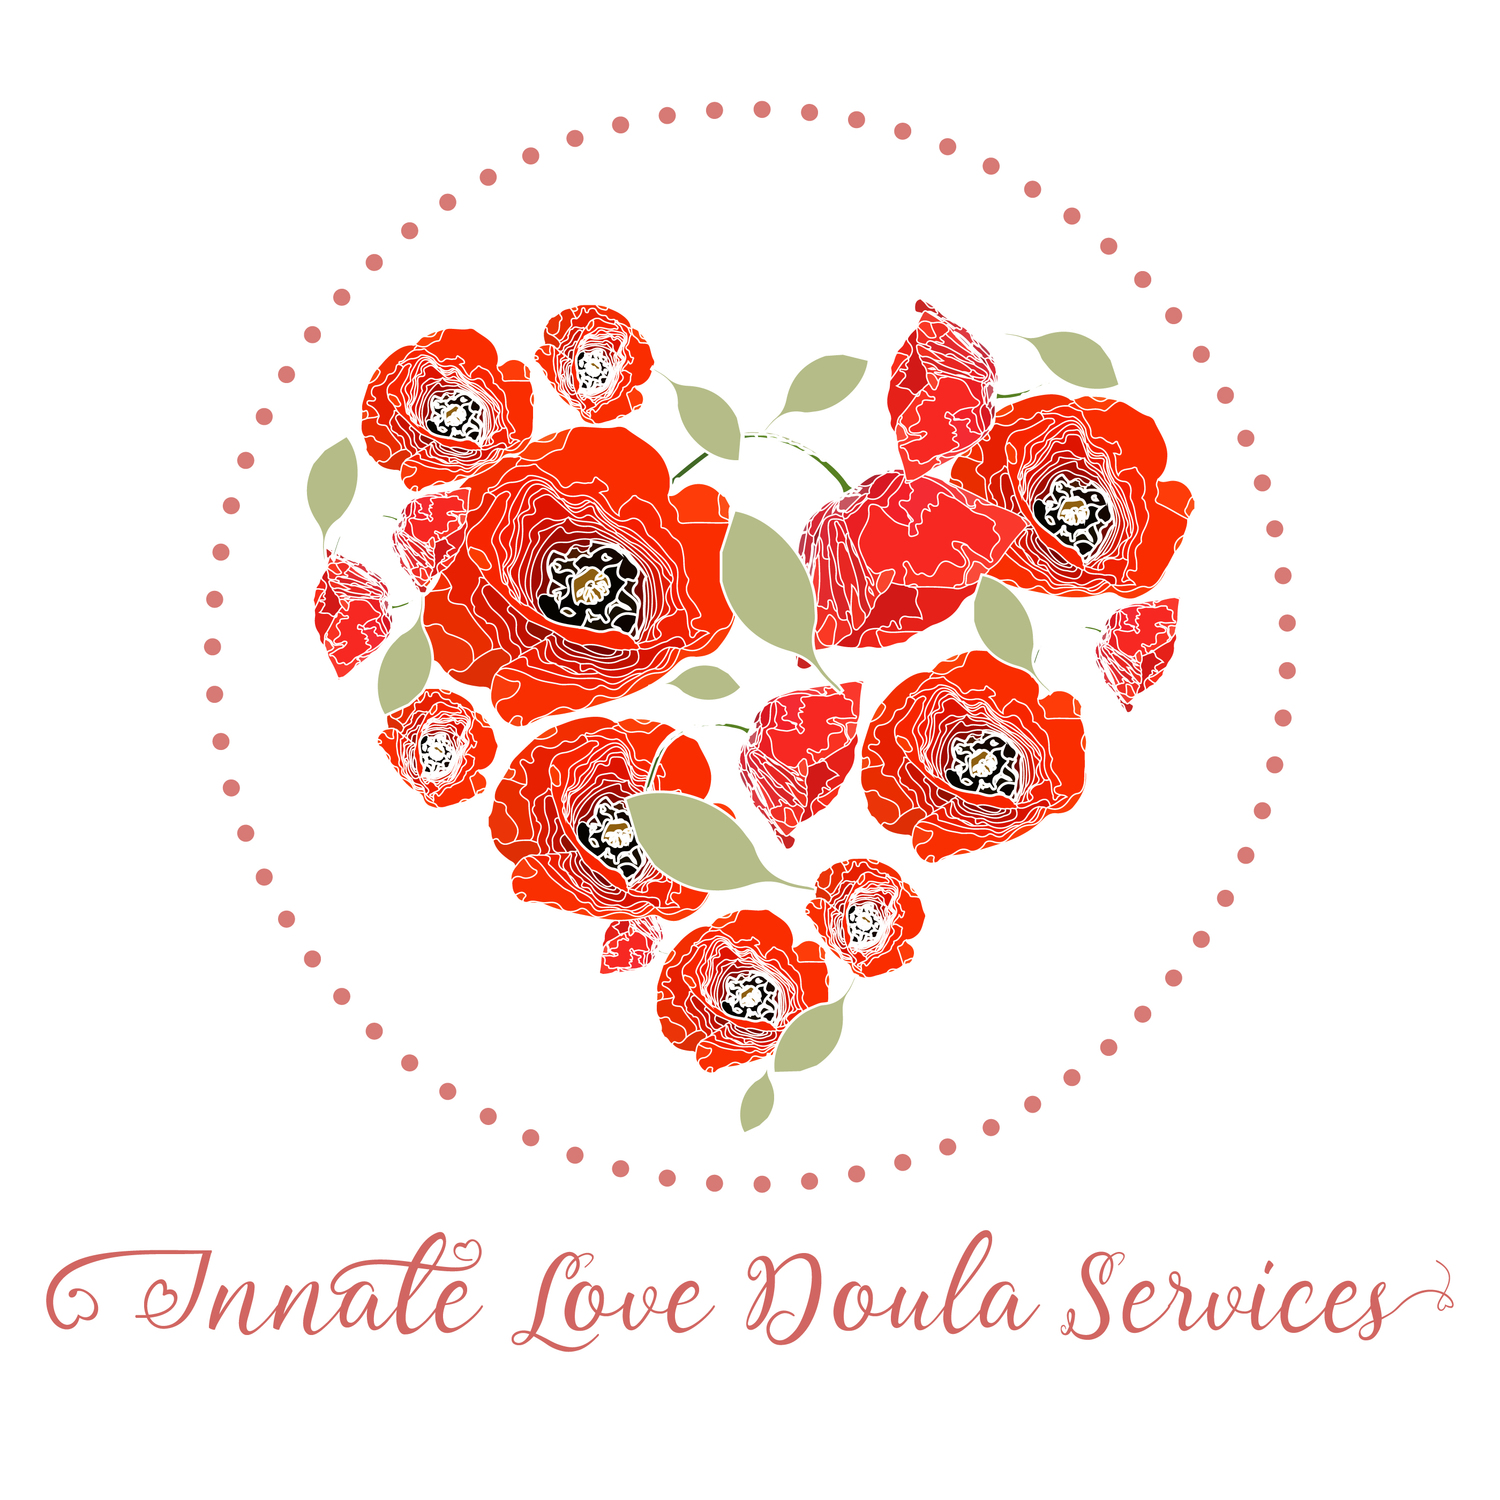 Innate Love Doula Services